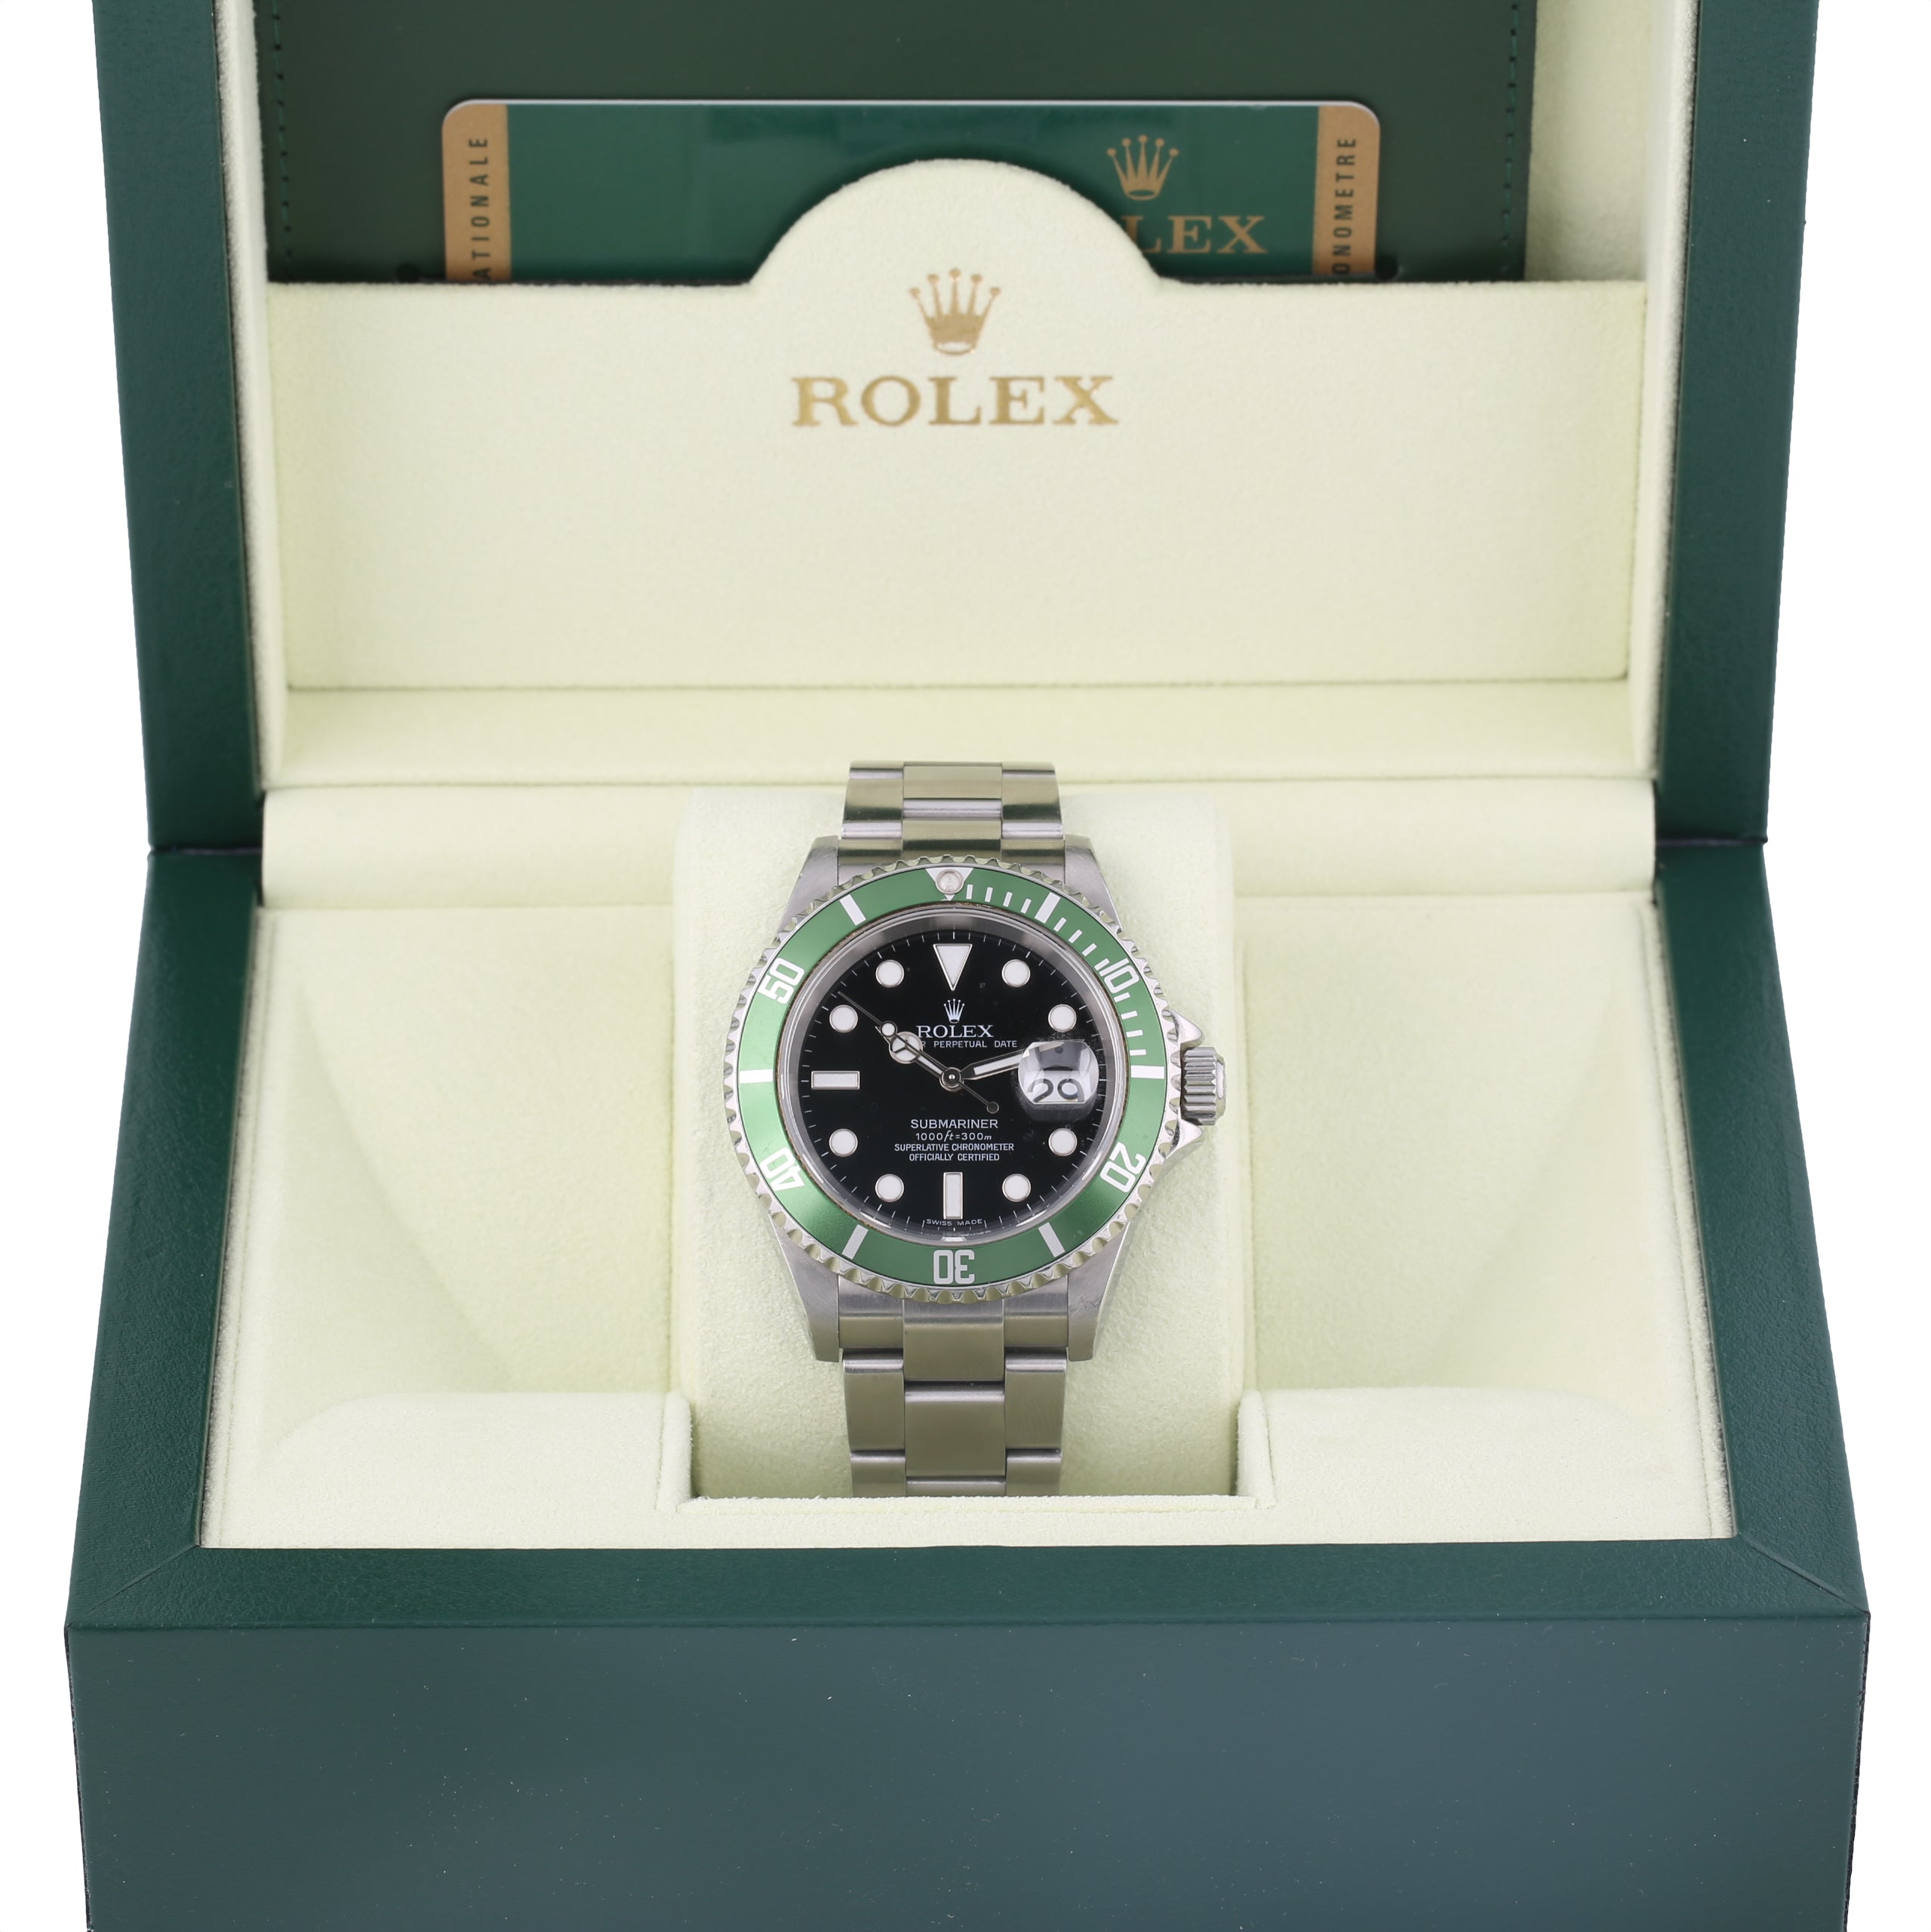 Stainless steel Rolex submariner anniversary ref 16610v green bezel box & papers. - Terrafinejewelry